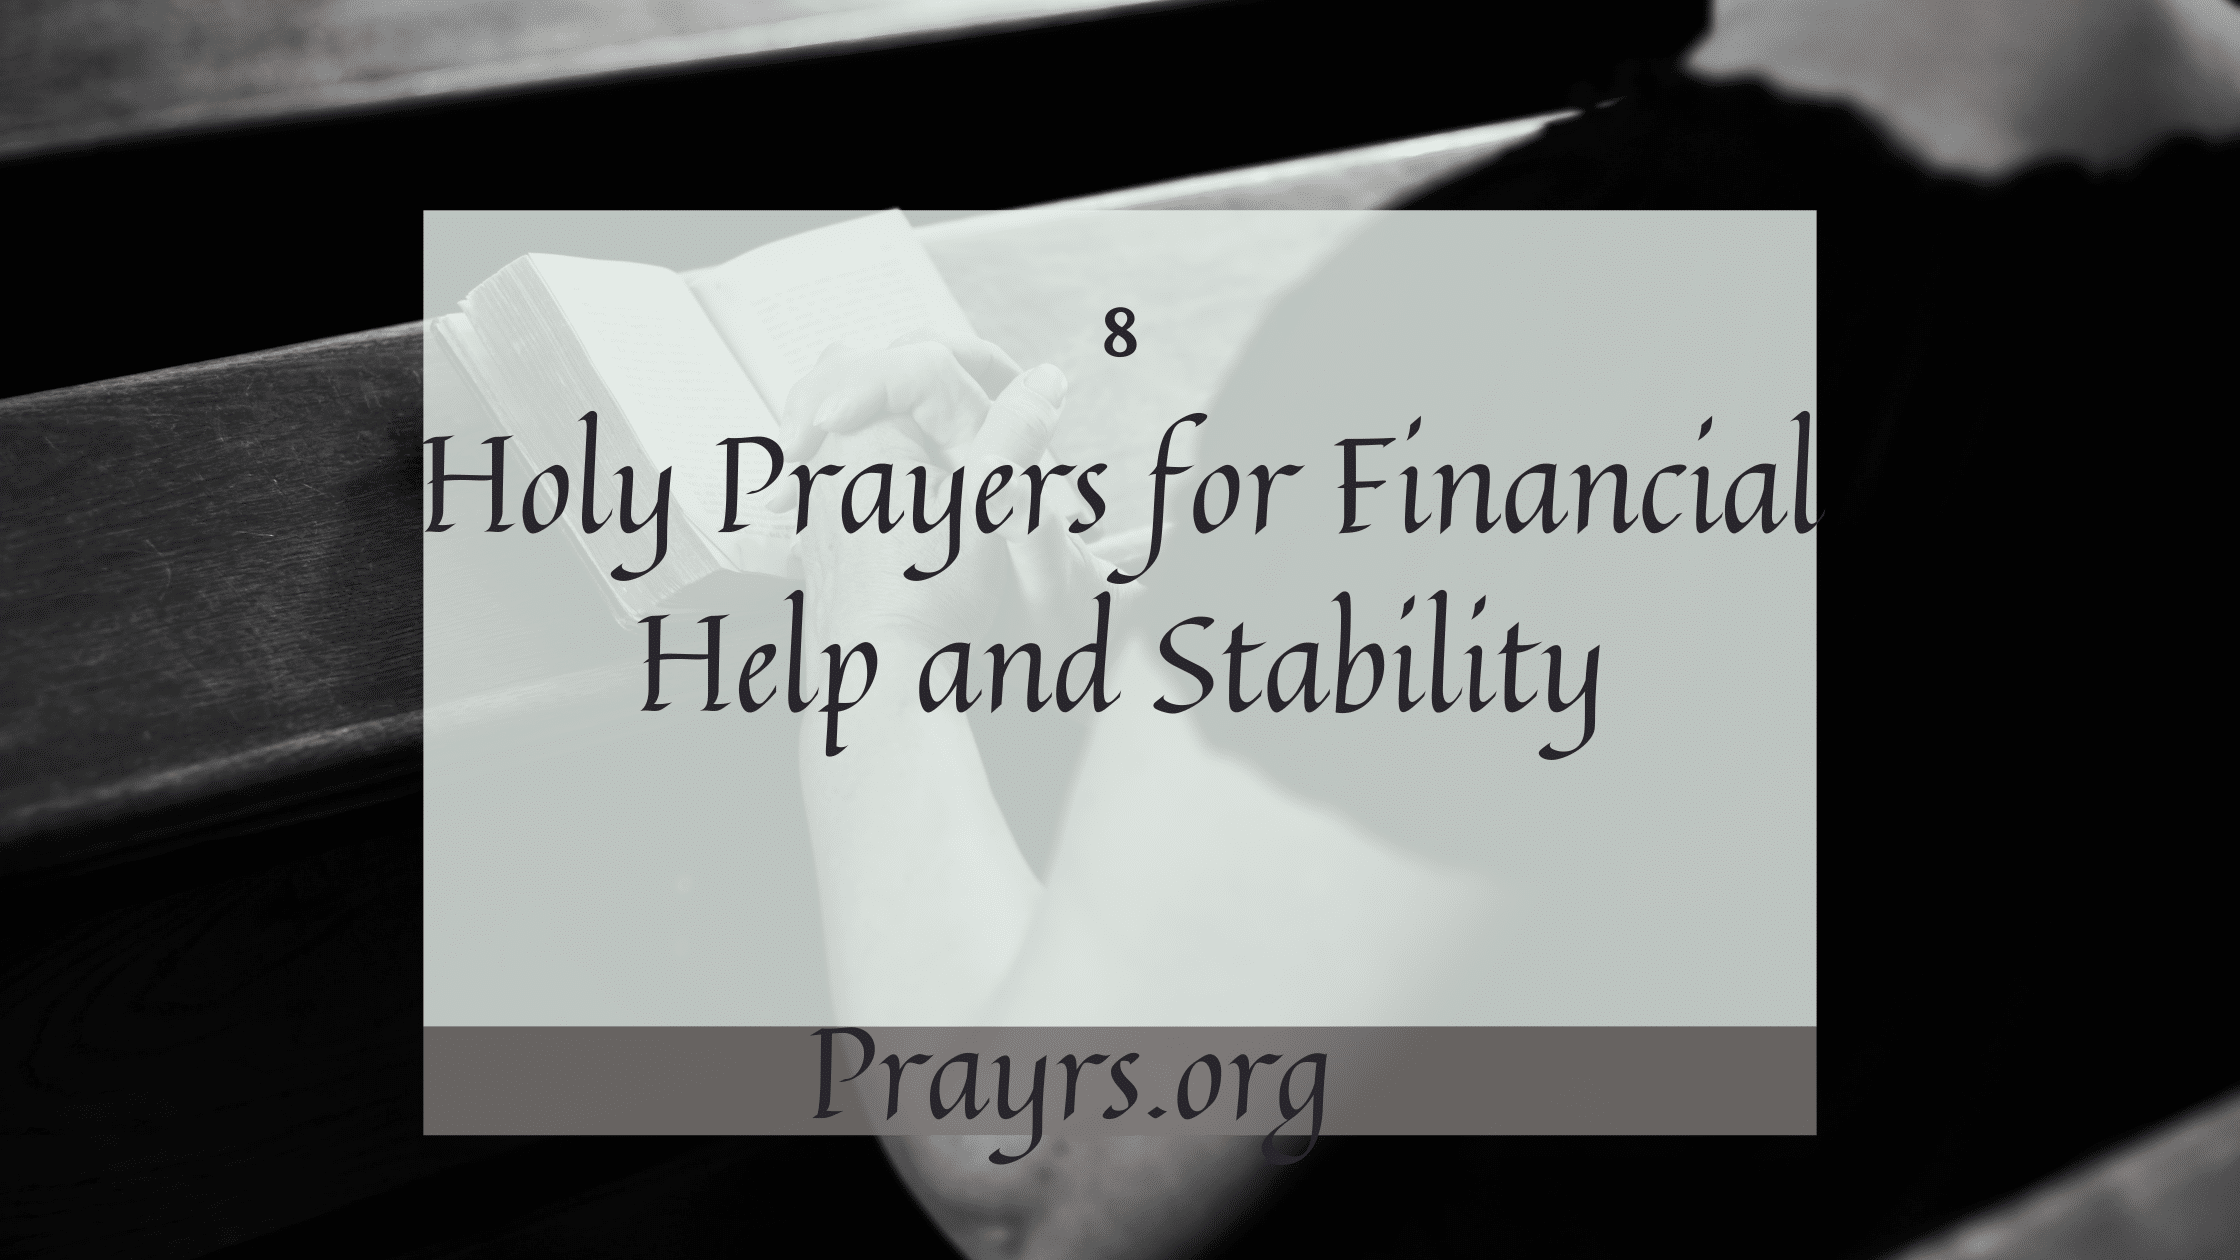 Prayers for Financial Help and Stability